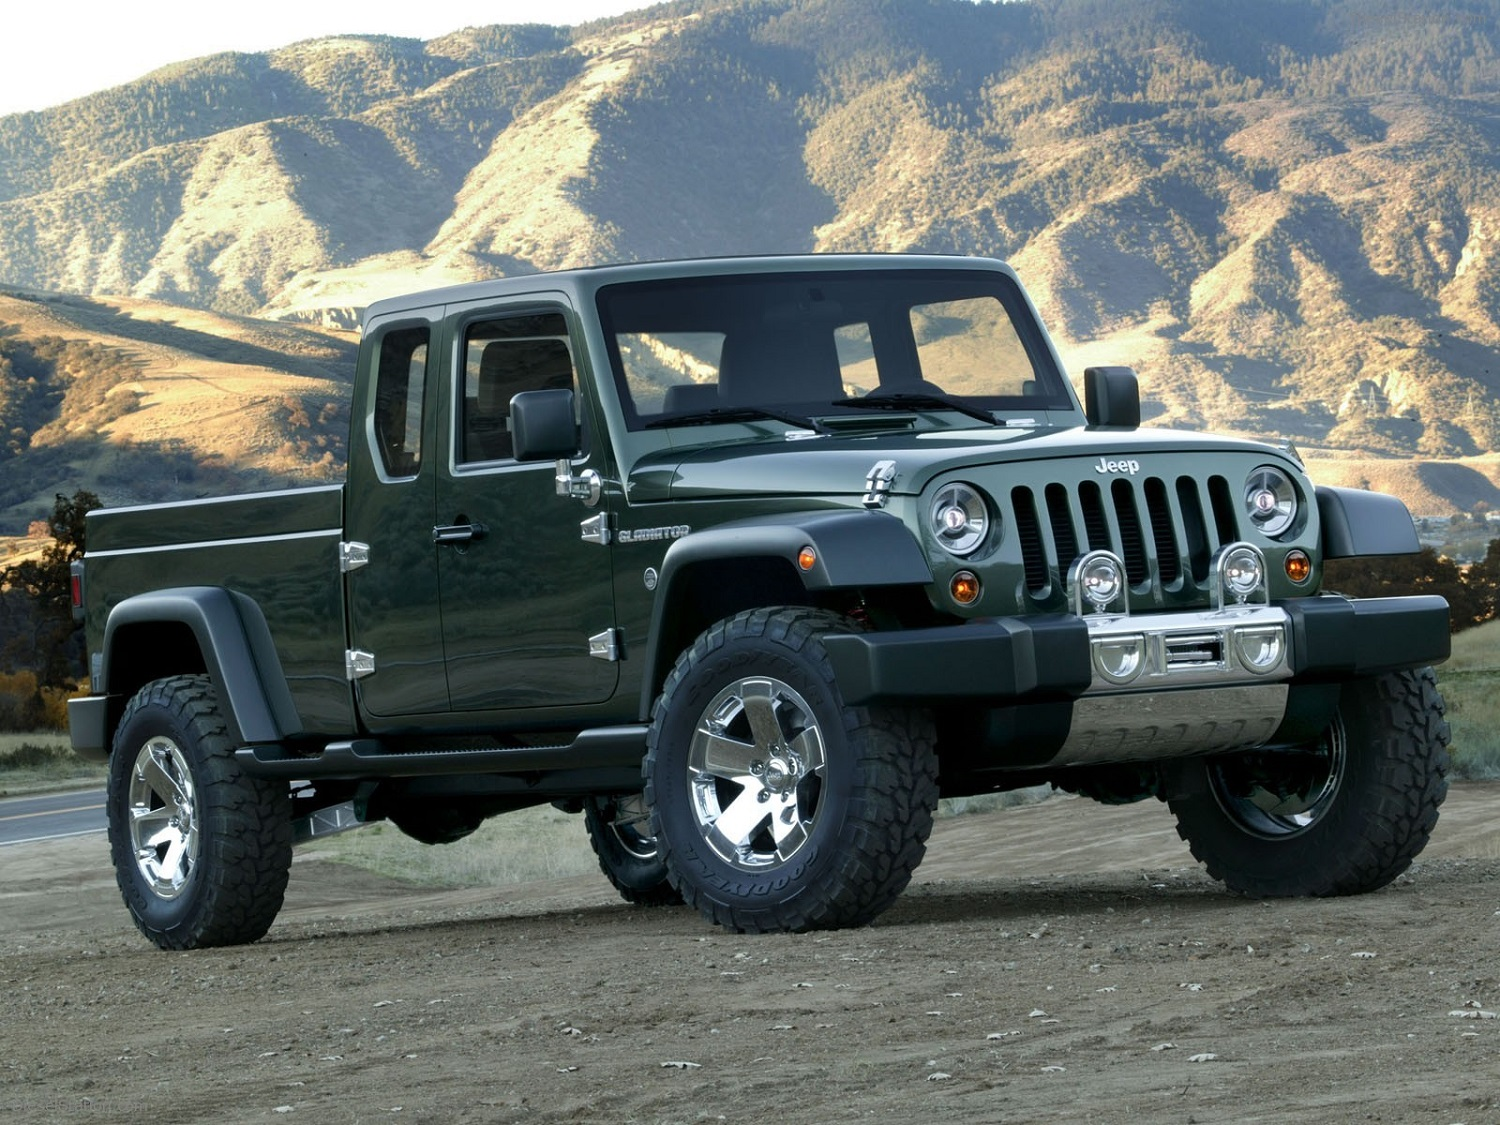 2017 jeep wrangler concept design 2017 - Jeep S Long Rumored Truck Could Be Either A Standalone Model Or A Wrangler Off Shoot